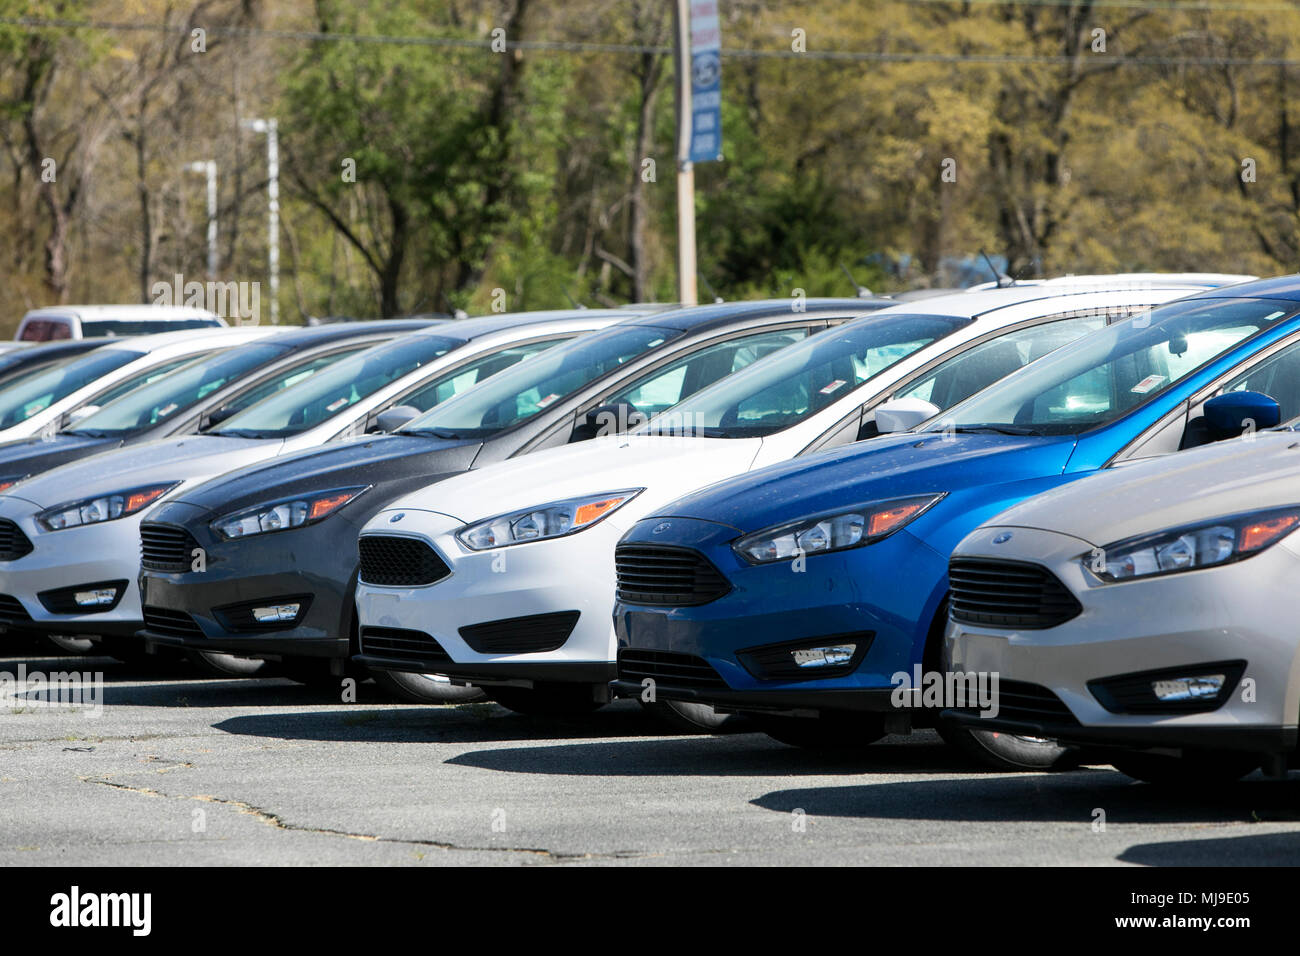 Ford Fiesta, Focus and Fusion passenger cars on a dealer lot in Seaford, Delaware on April 29, 2018. - Stock Image